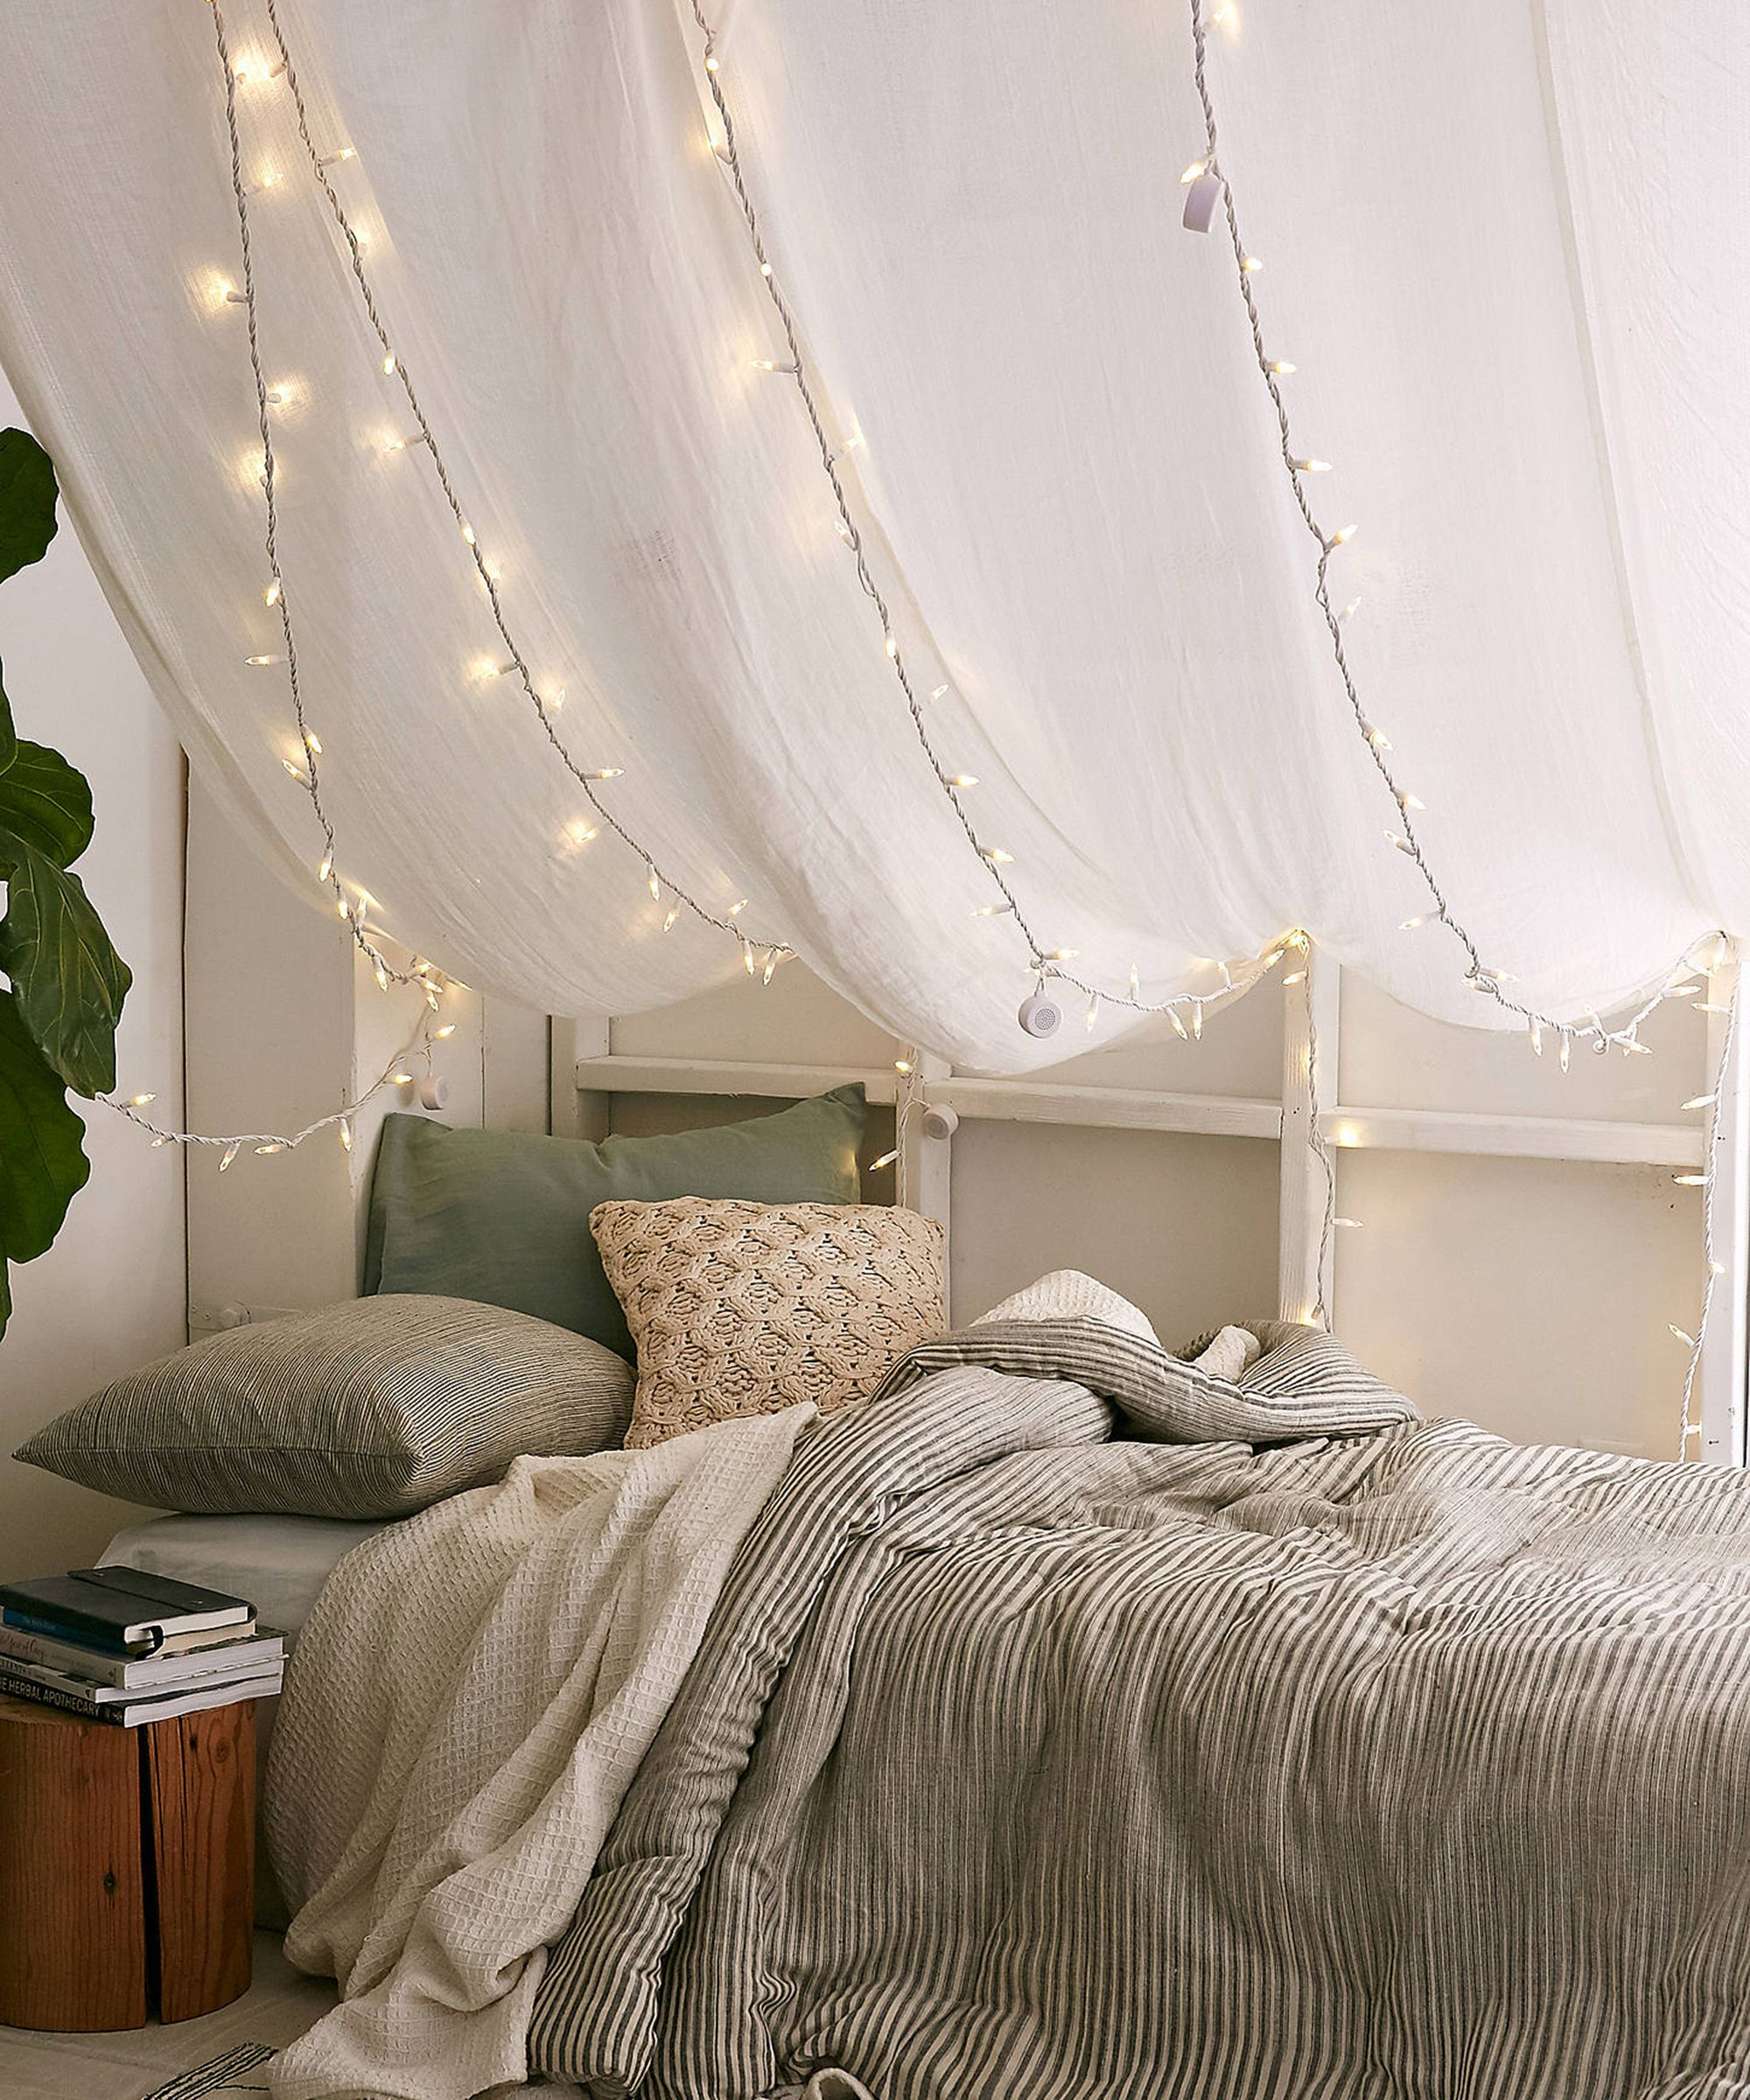 10 Cute String Lights That Work For Dorms — & Grown-Up Homes